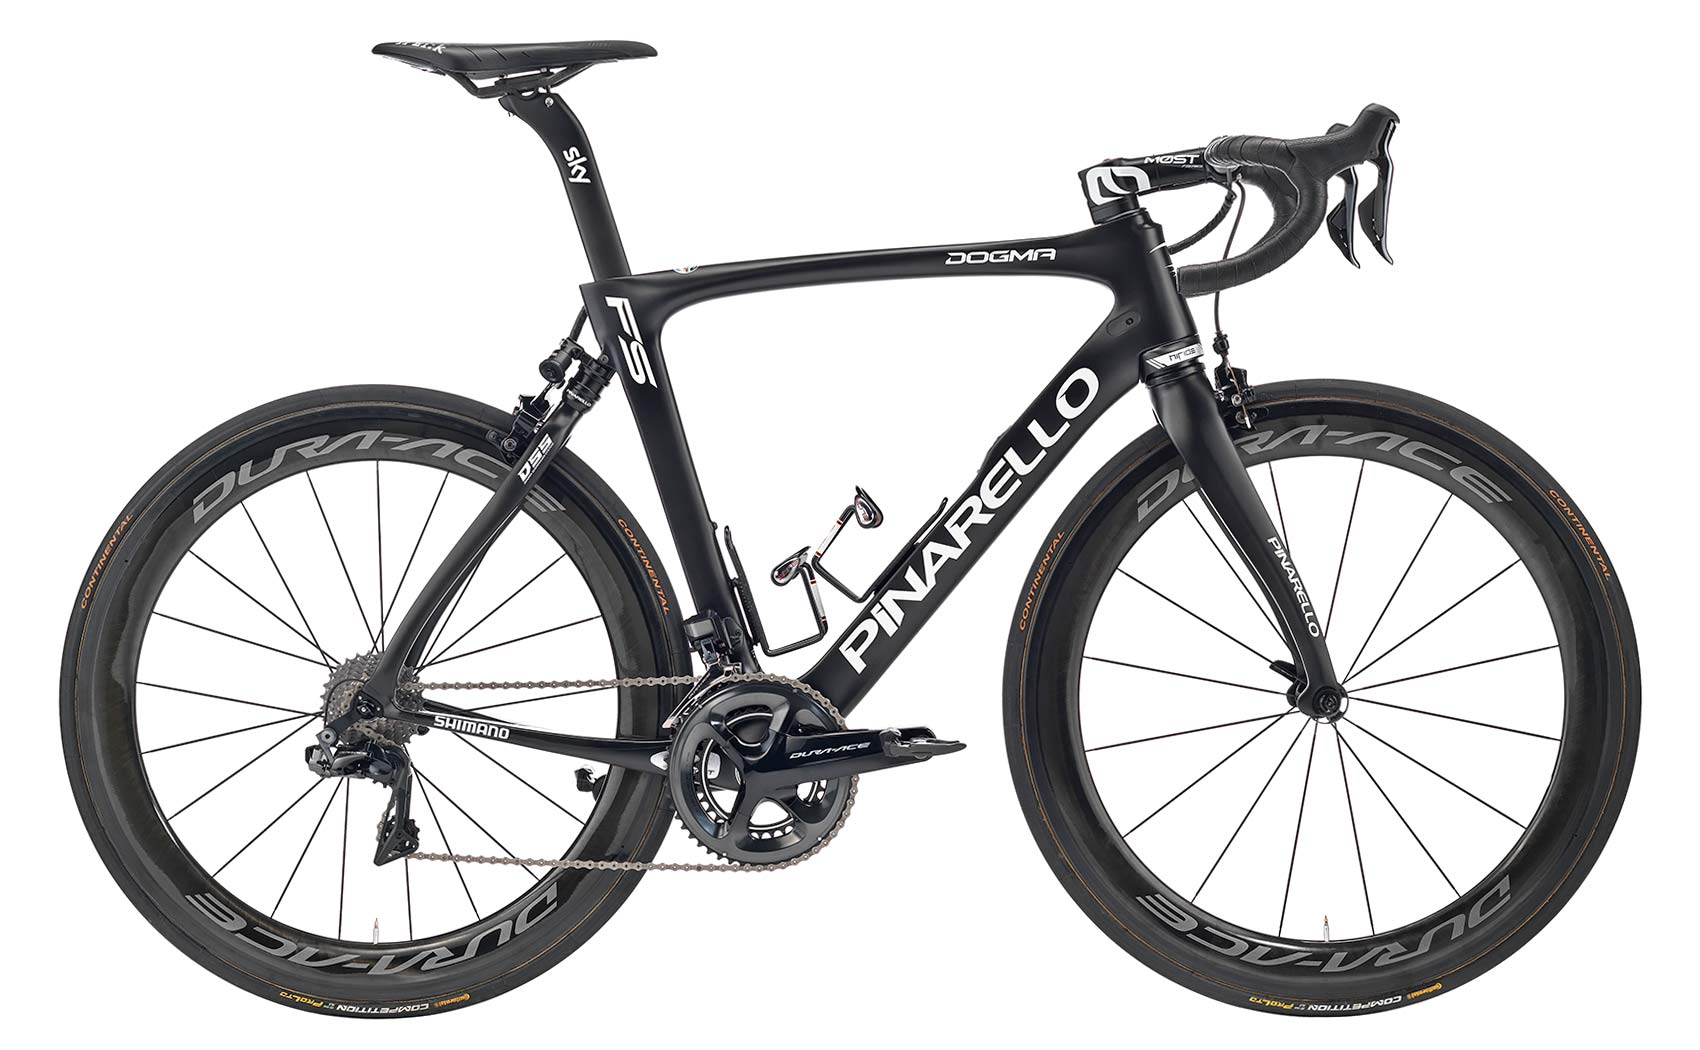 Pinarello Dogma FS road bike, electronic-control, full-suspension lightweight carbon road race bike